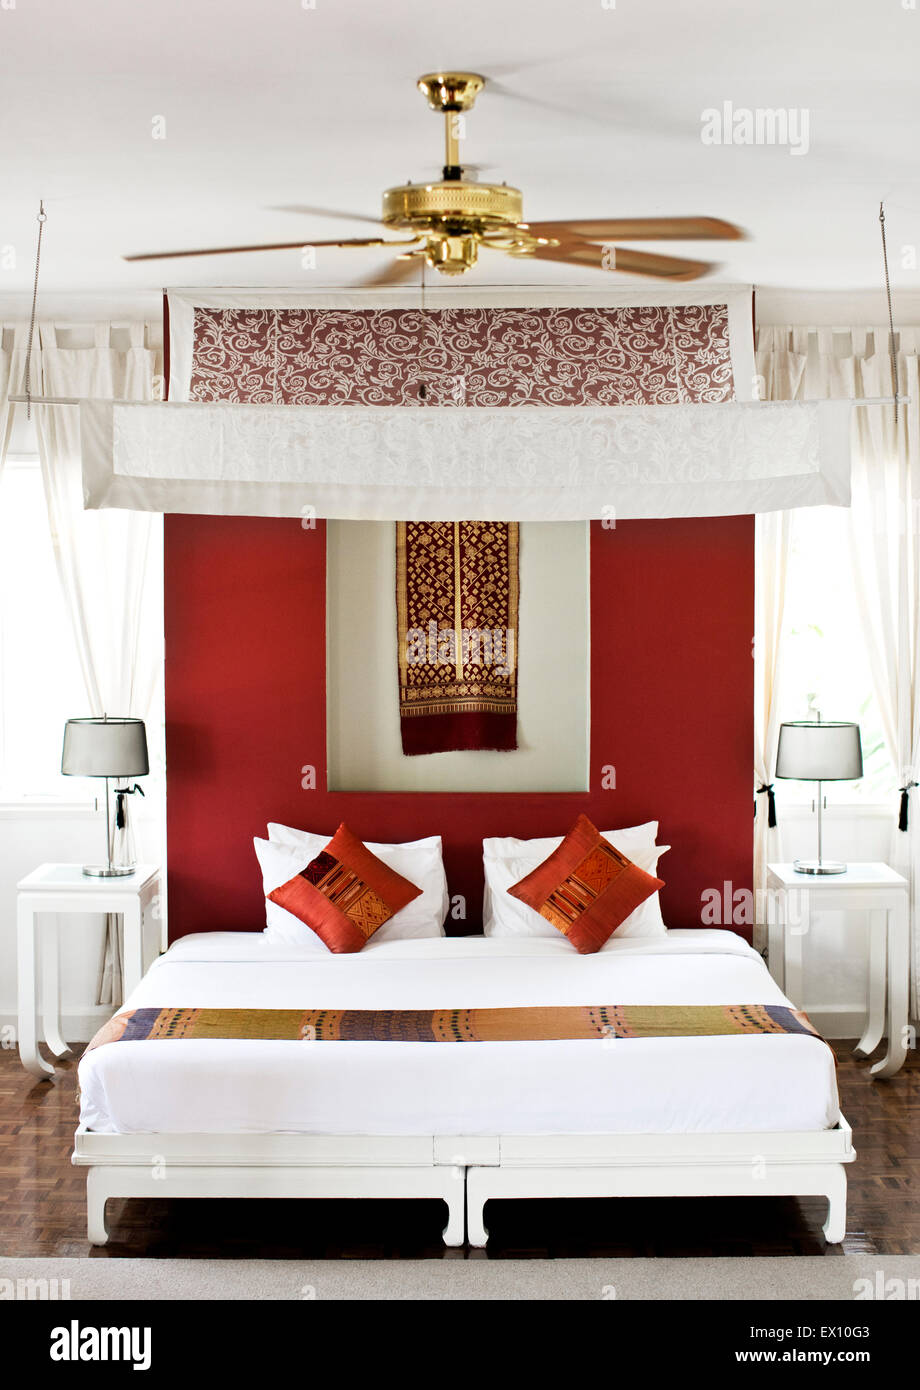 The 'Maison' Room - former bedroom of the Prince. Maison Souvannaphoum by Angsana Hotel. Luang Prabang, - Stock Image